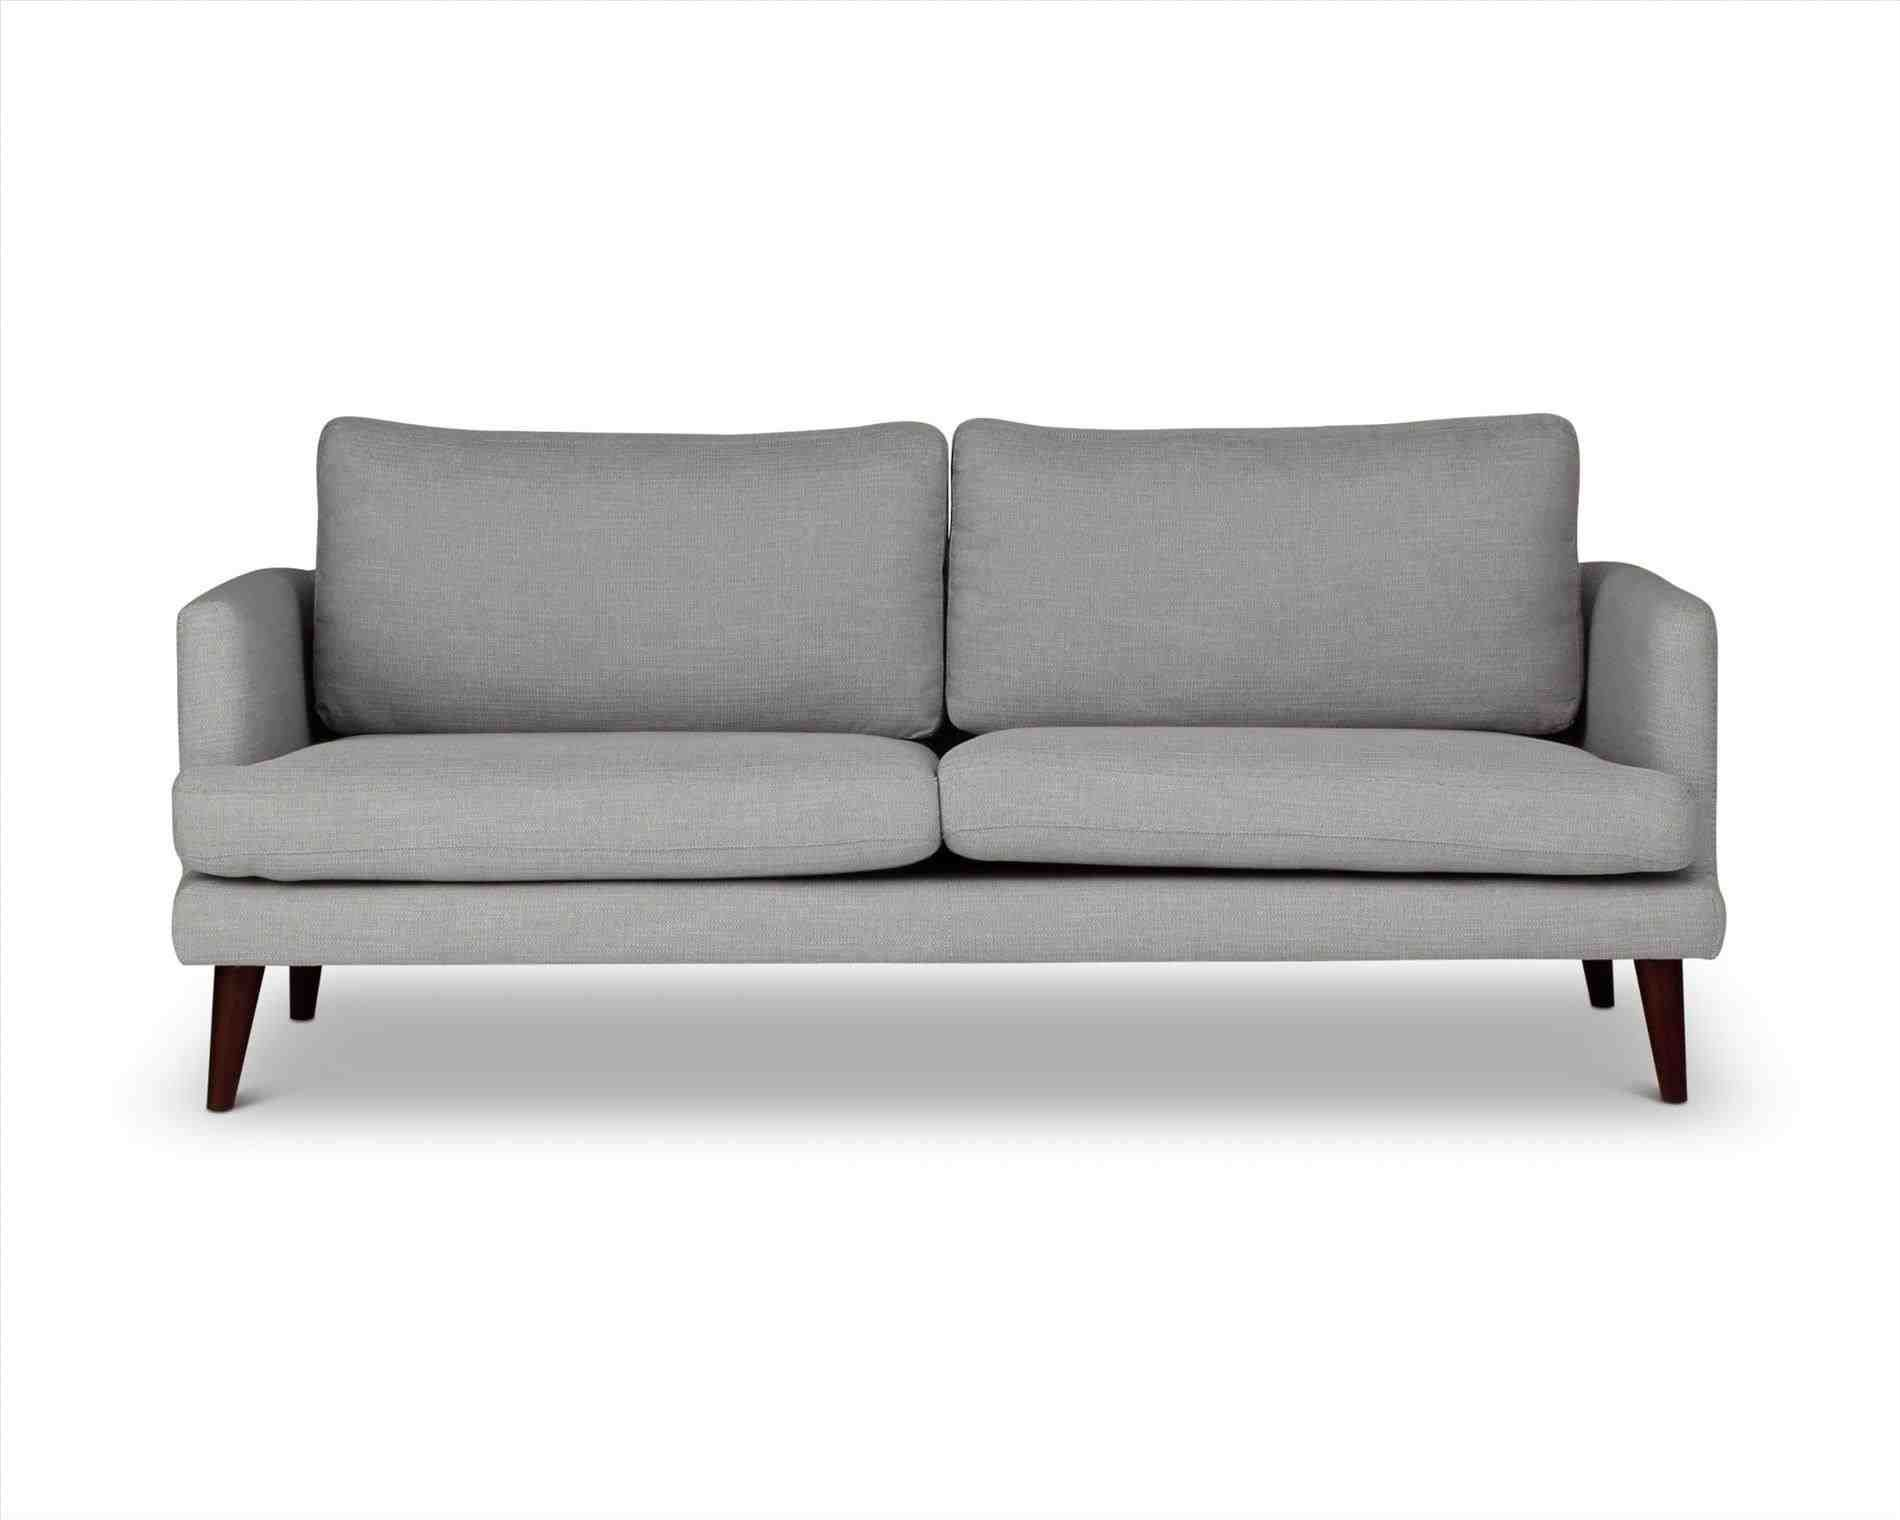 King Furniture Sofa Gumtree Melbourne Arne Vodder Modular Sydney Brokeasshome